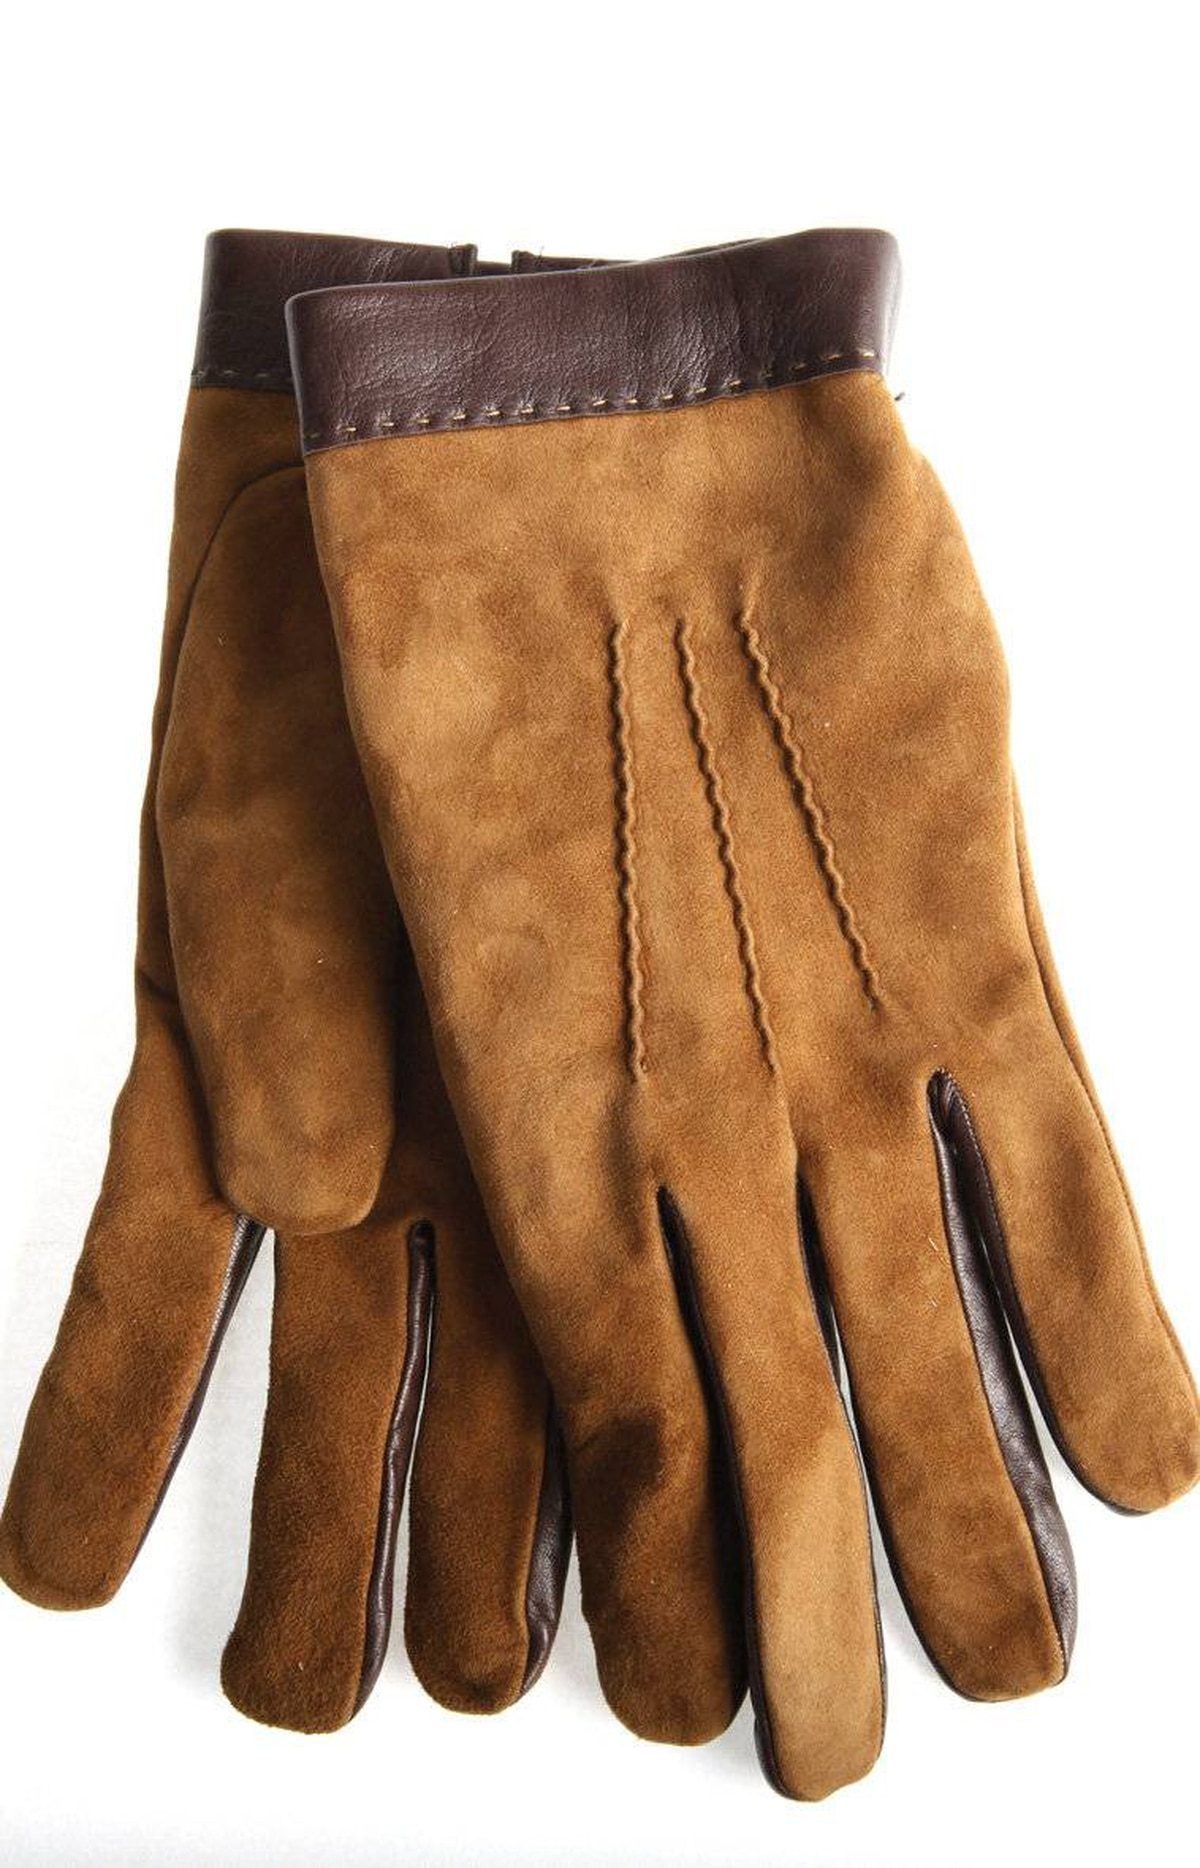 Camel gloves, $85 at Banana Republic (www.bananarepublic.com).